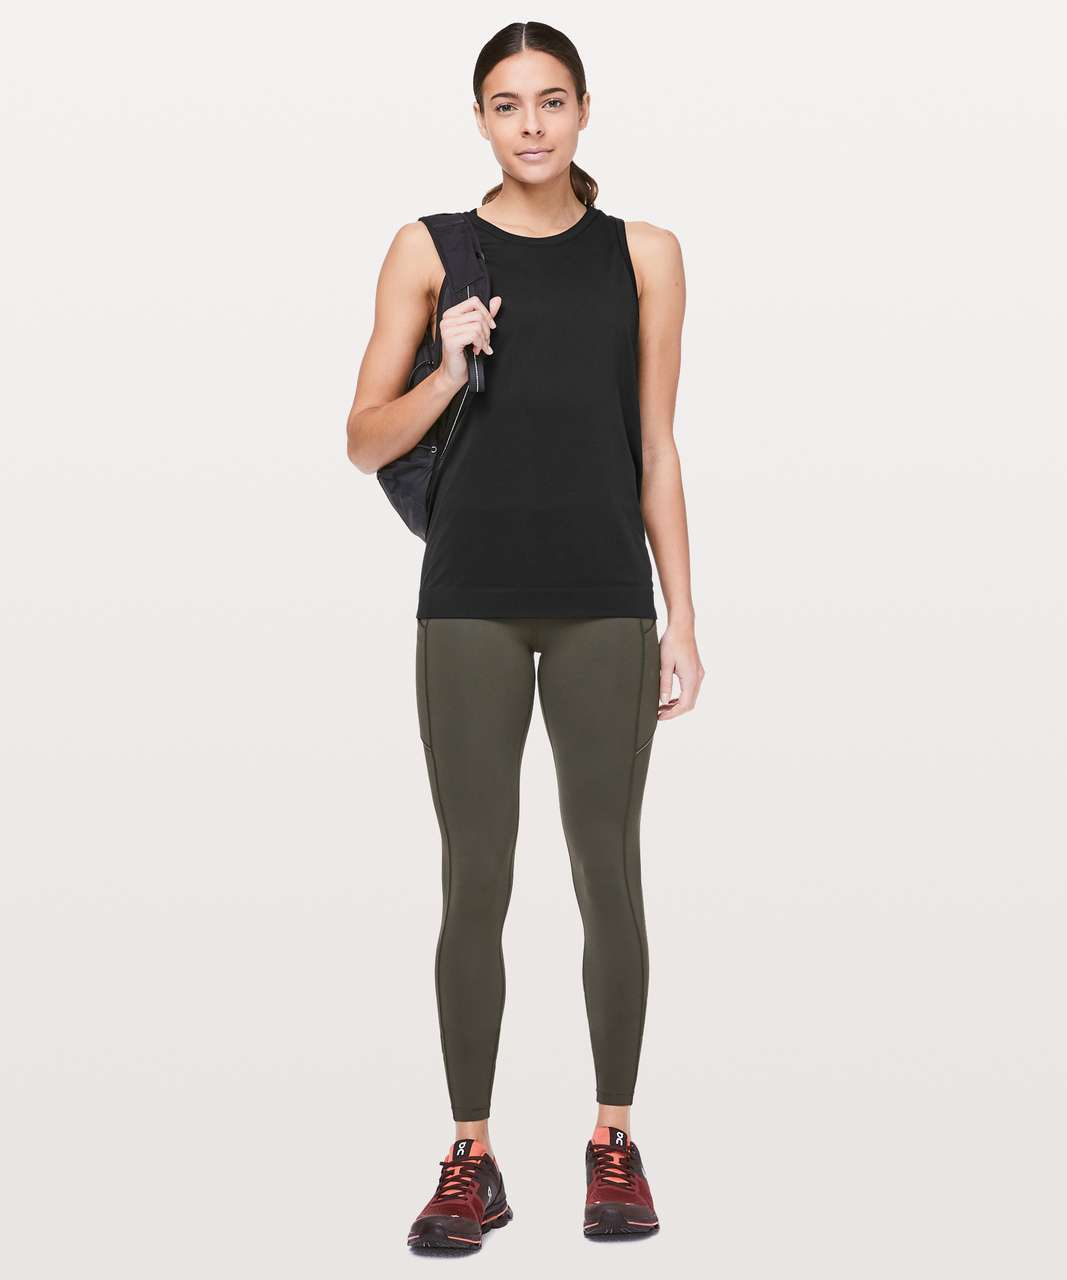 Lululemon Swiftly Breeze Tank - Black / Black